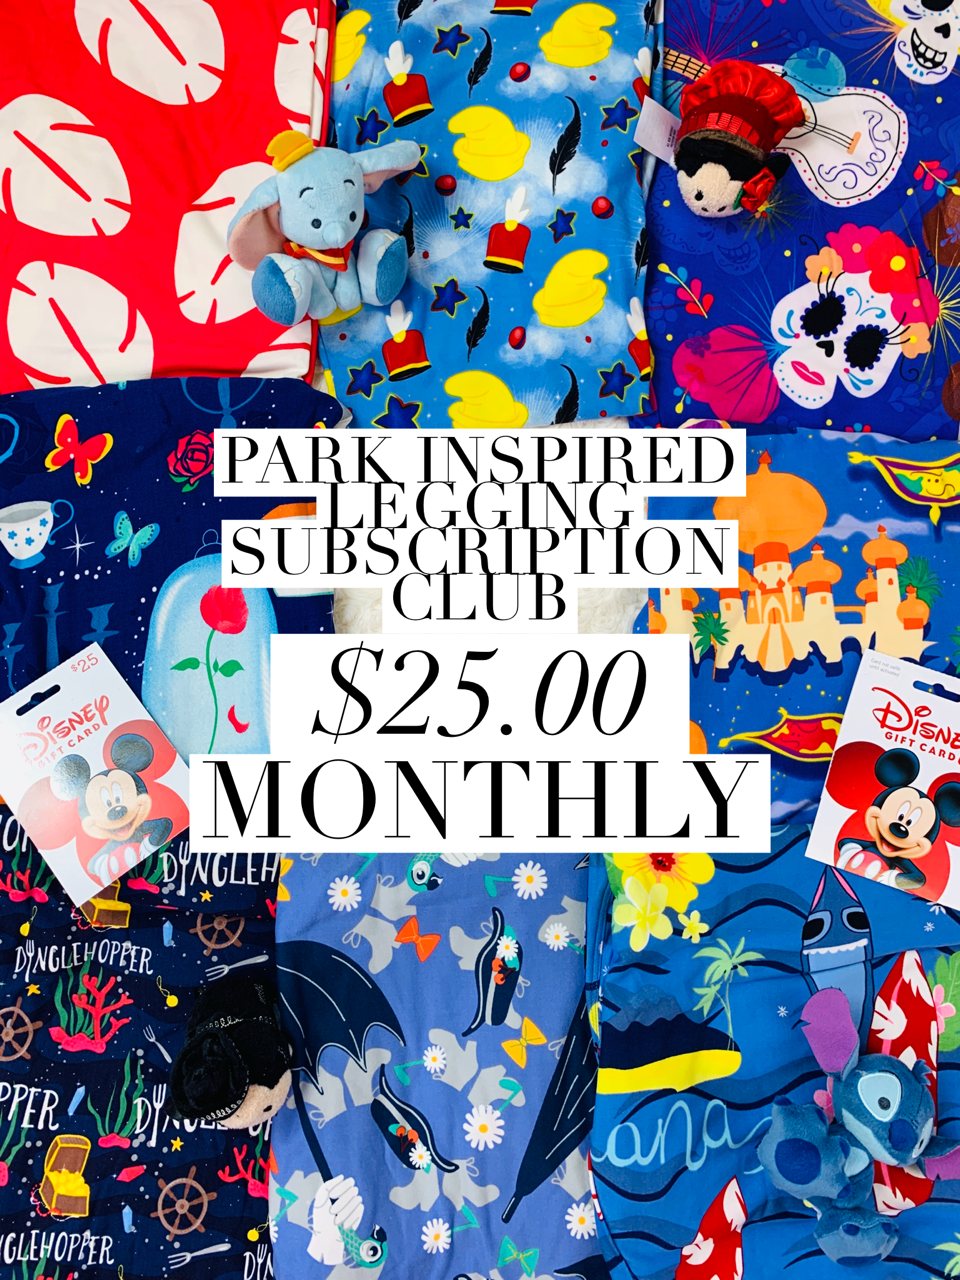 Park Inspired Leggings Subscription Club - Monthly Subscription - Ambrie